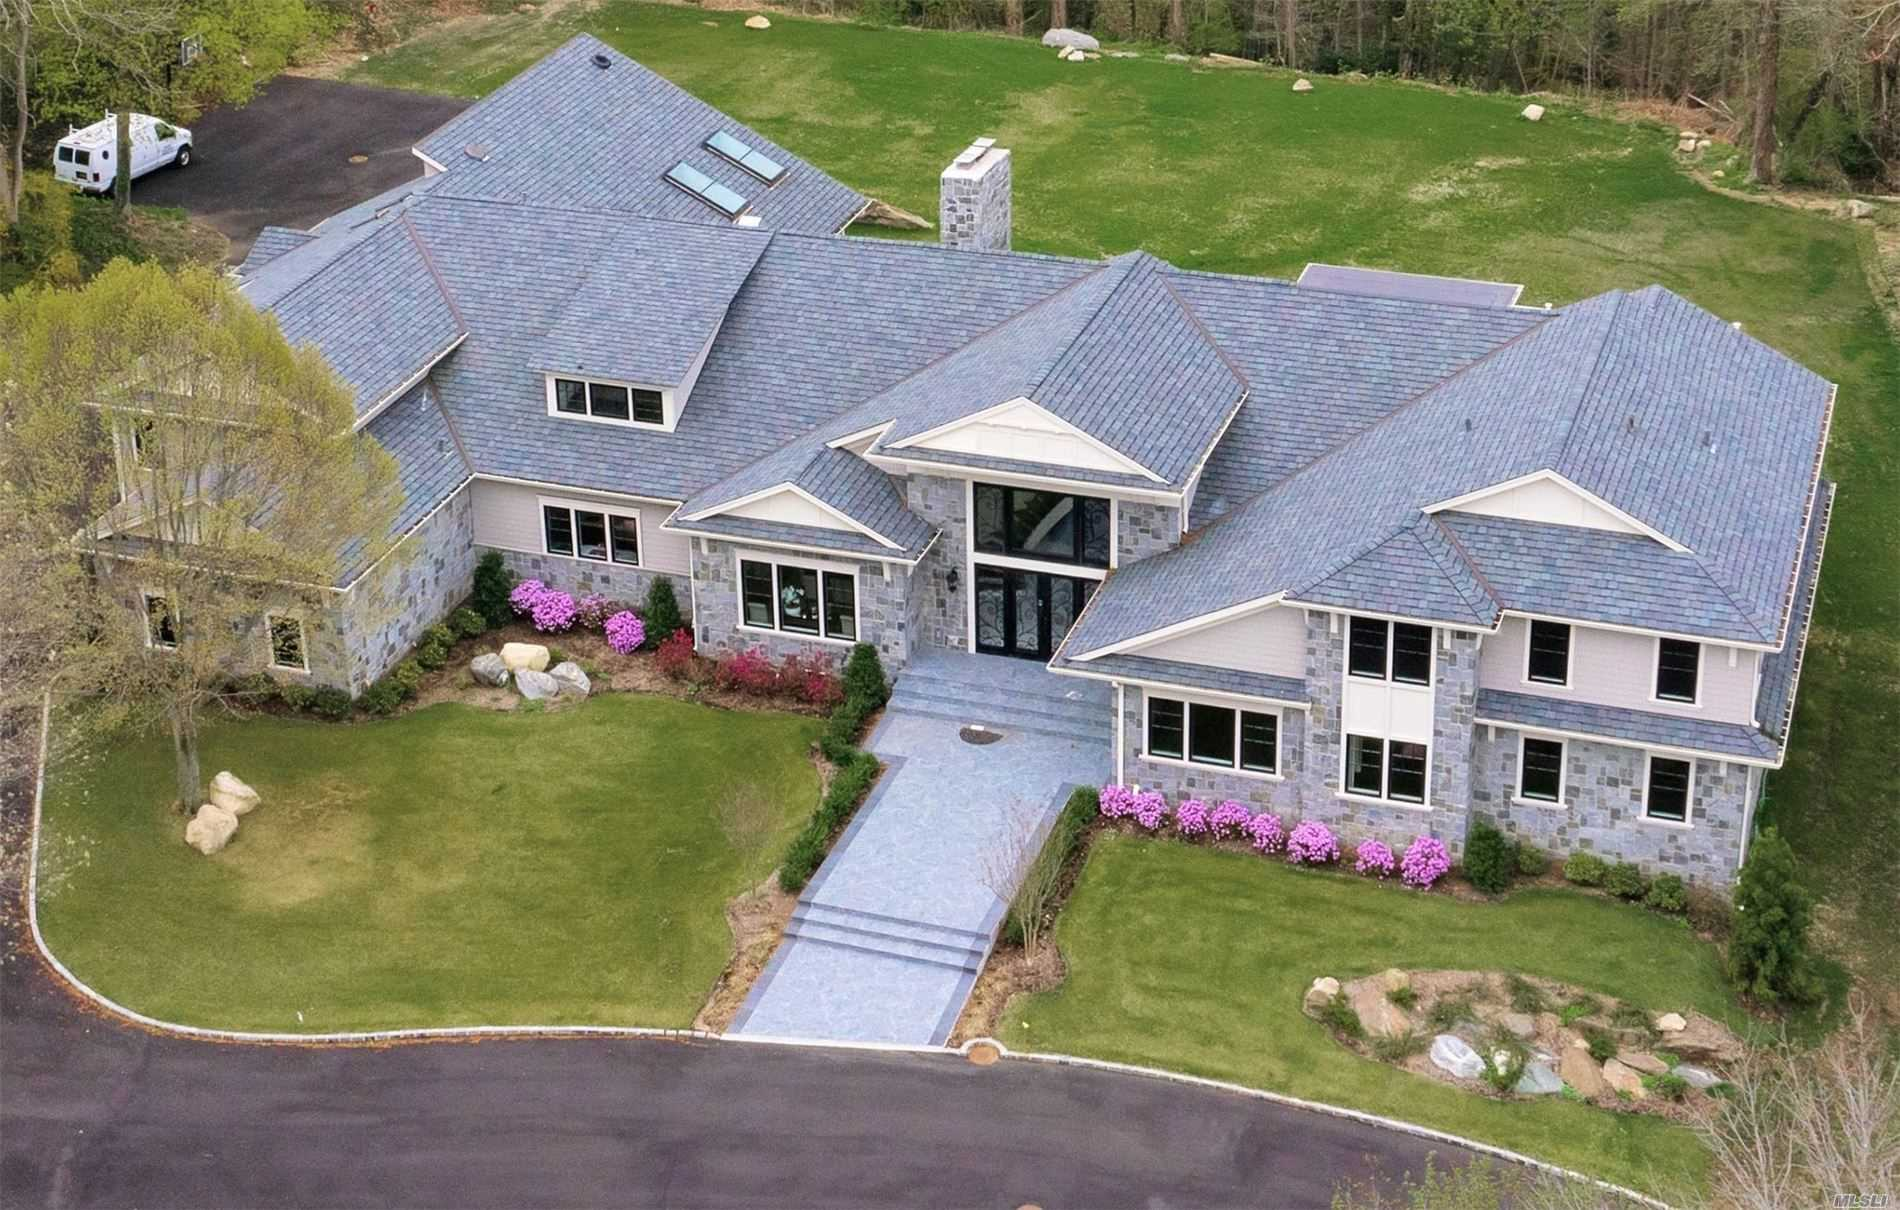 Grand 10, 000 sq.ft. of luxurious living space, incredible new construction with indoor pool. Situated in the waterfront community in Lattingtown Harbor featuring a beach house, mooring rights and daily sunsets. Smart house with three central iPad stations, many green features, smart everything-appliances, sonos, temperature controlled shower, wine cooler, home theatre, outdoor kitchen and fire-pit. Finest custom built-ins with high end finishes, entertainment center and bar in family room.